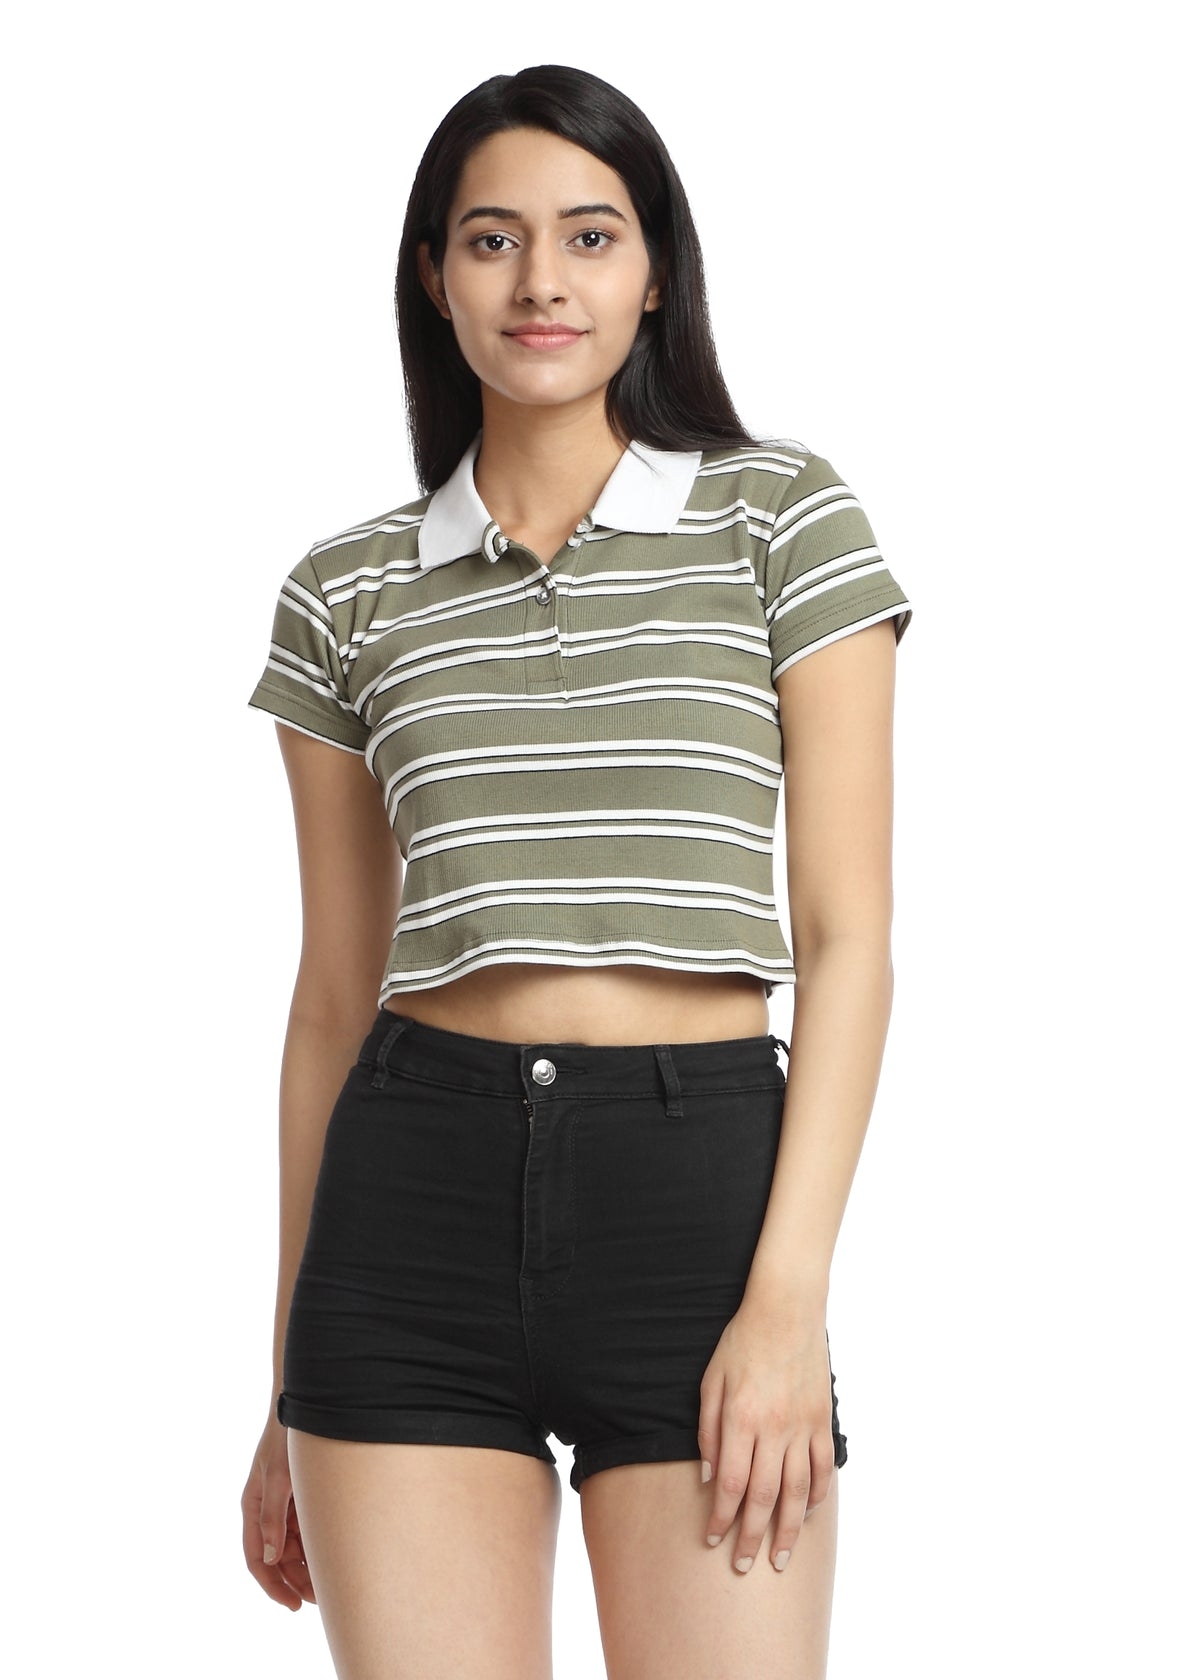 Crop Polo T-shirt green&white striped